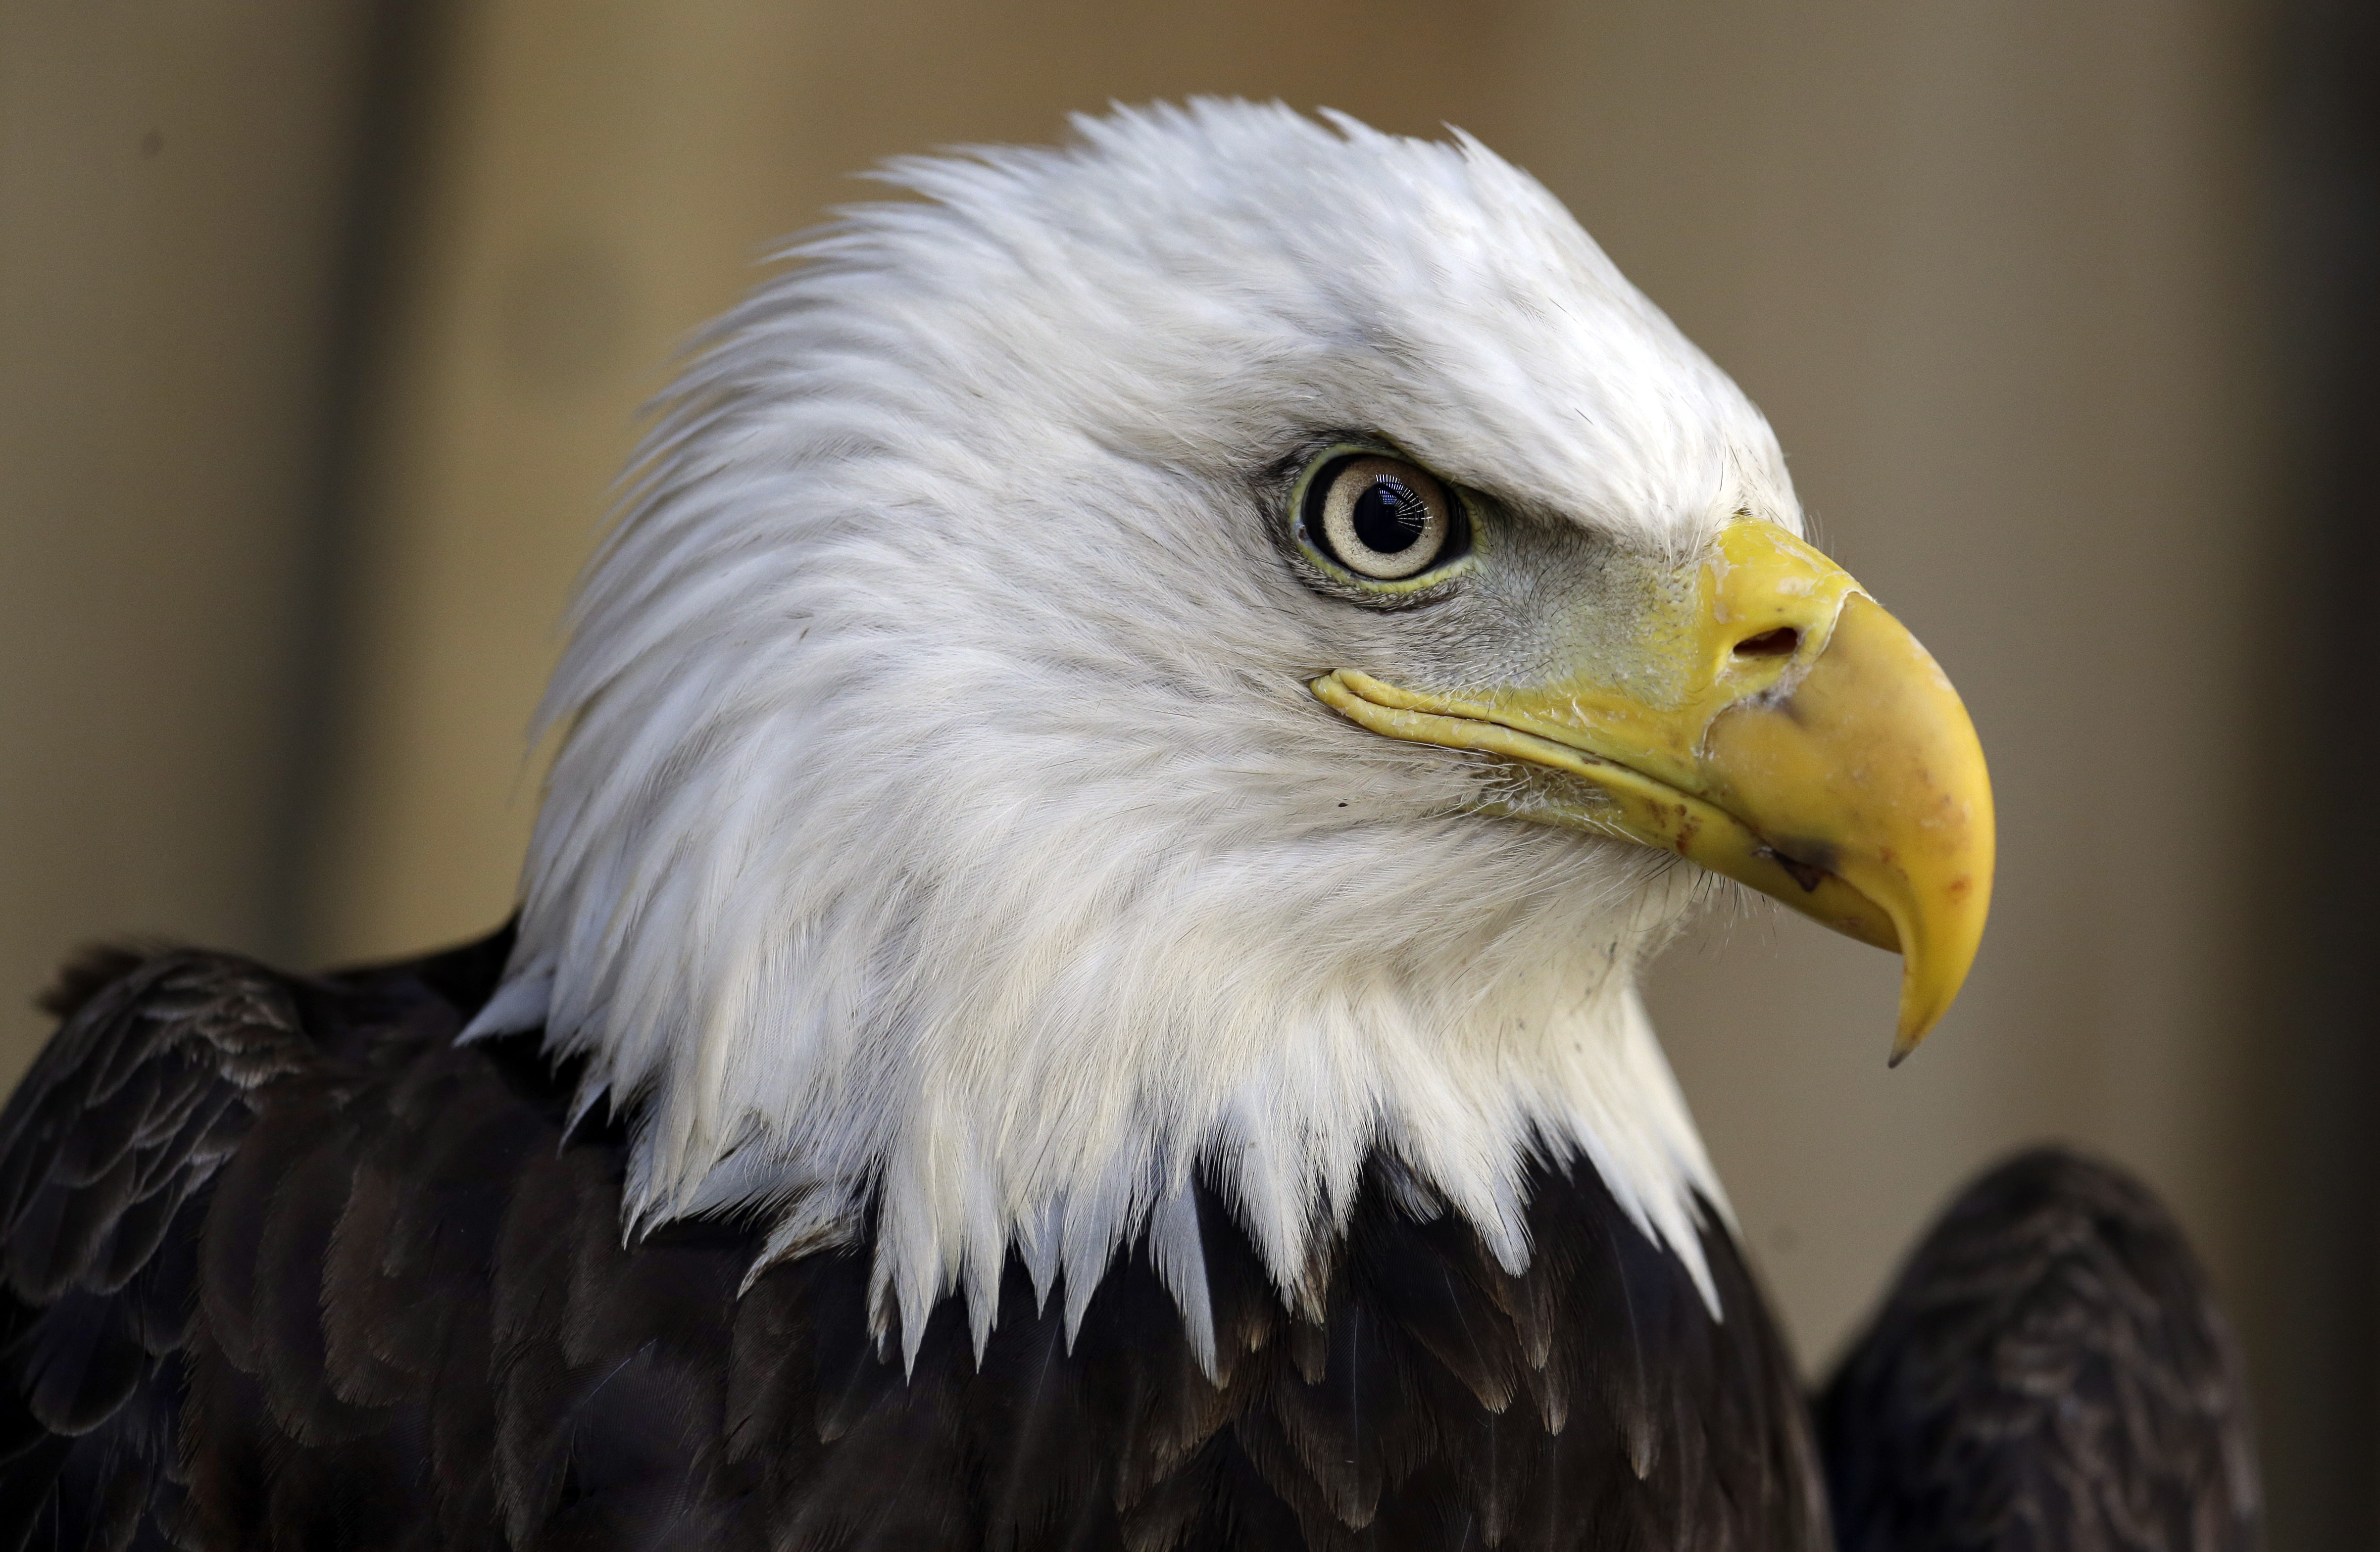 Eagle slaughter: Wind farms kill 67 eagles in 5 years